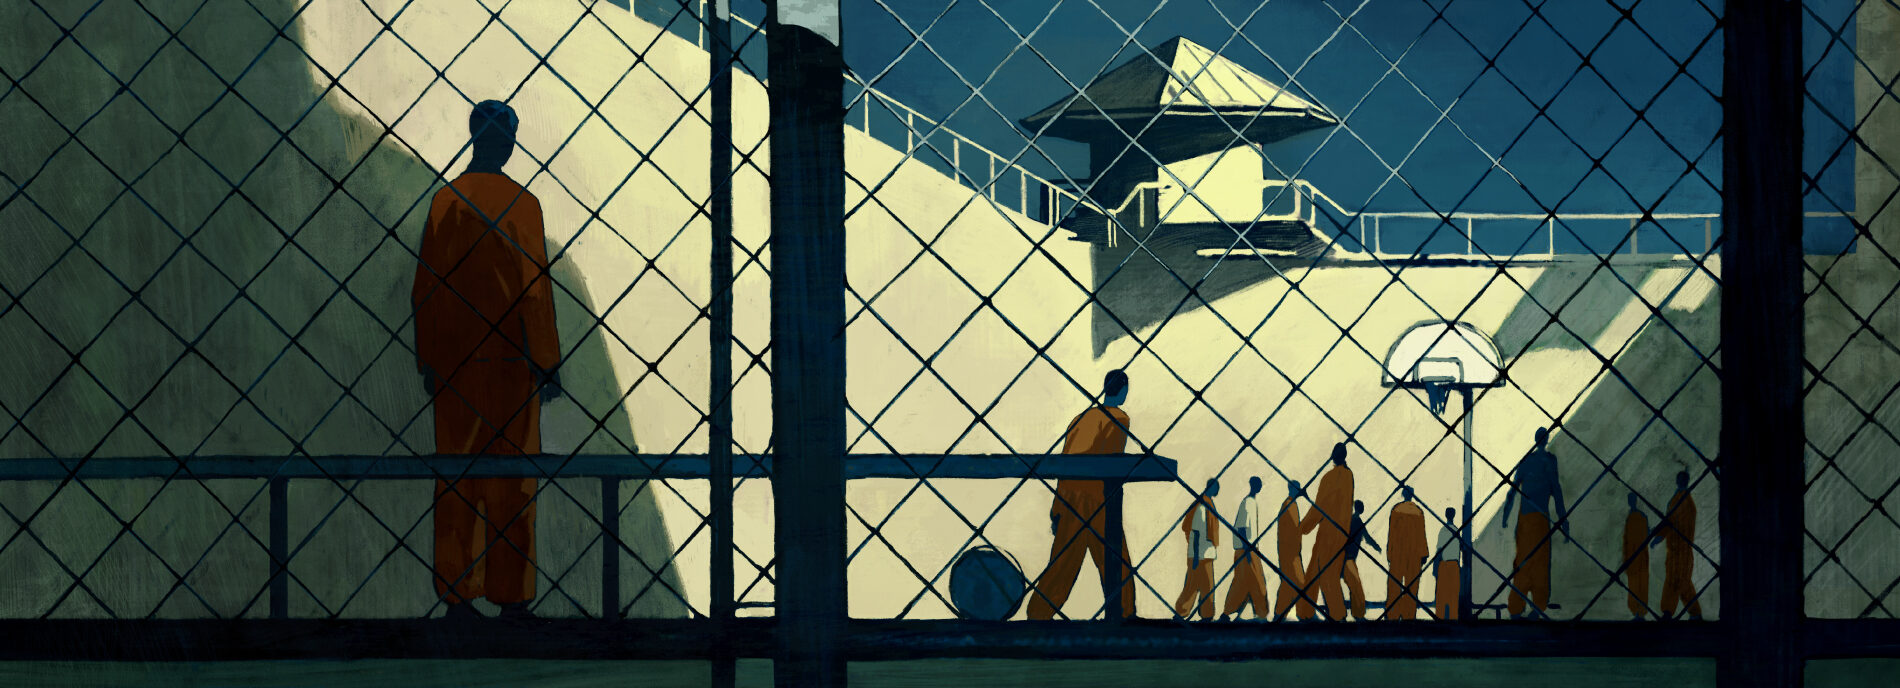 illustration shows isolated figure alone in the prison yard, watching other inmates exercise and socialize.